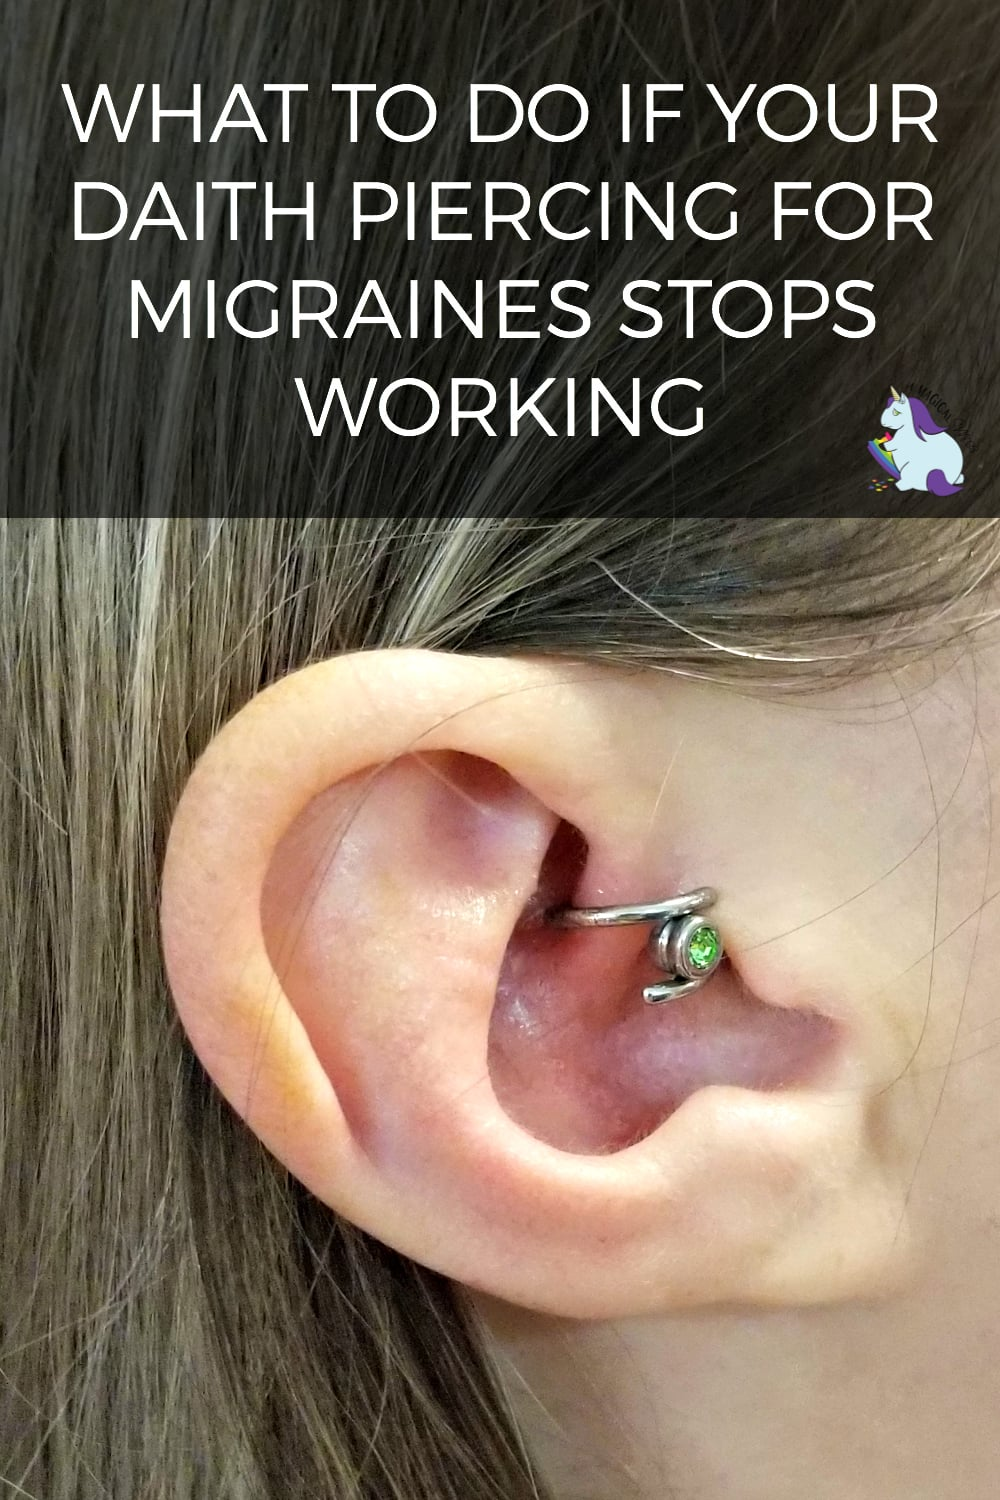 2 Years of Migraine Relief Thanks to the Daith Piercing - Now What? #daith #daithpiercing #migraines #migraine #migrainerelief #headaches